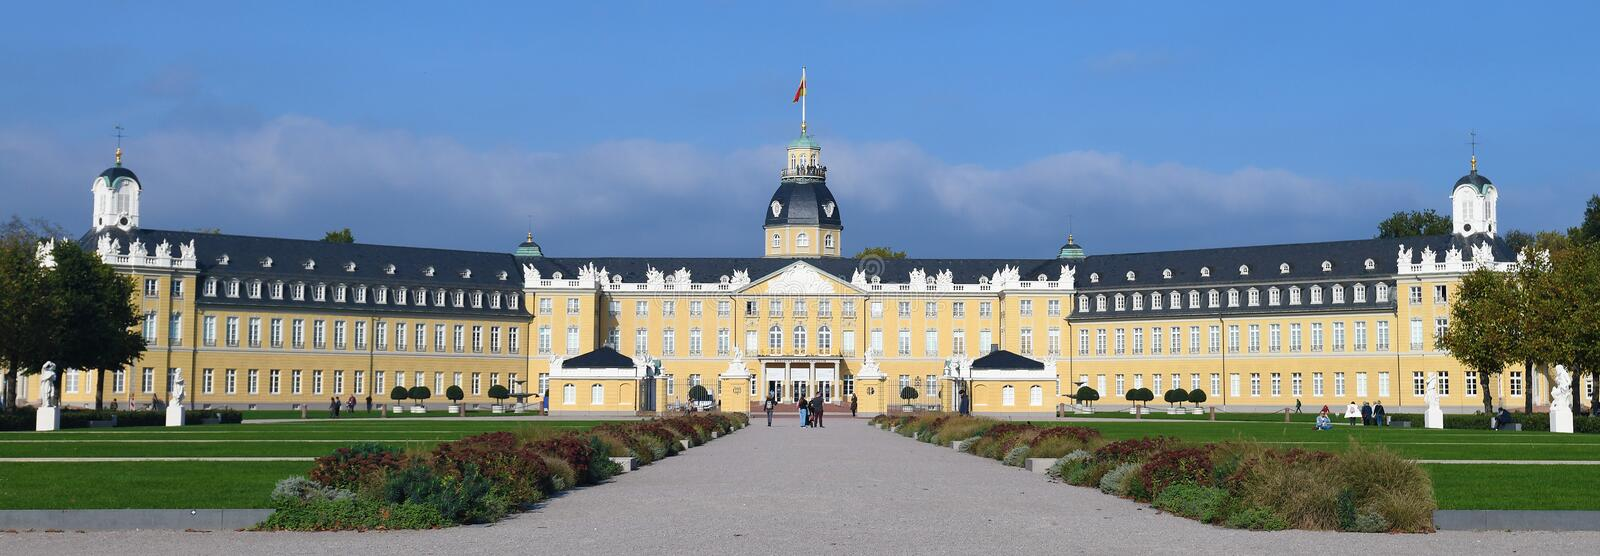 Karlsruhe, Germany - October 2019: Full view of front side of baroque Karlsruhe Palace with garden. On summer day royalty free stock image